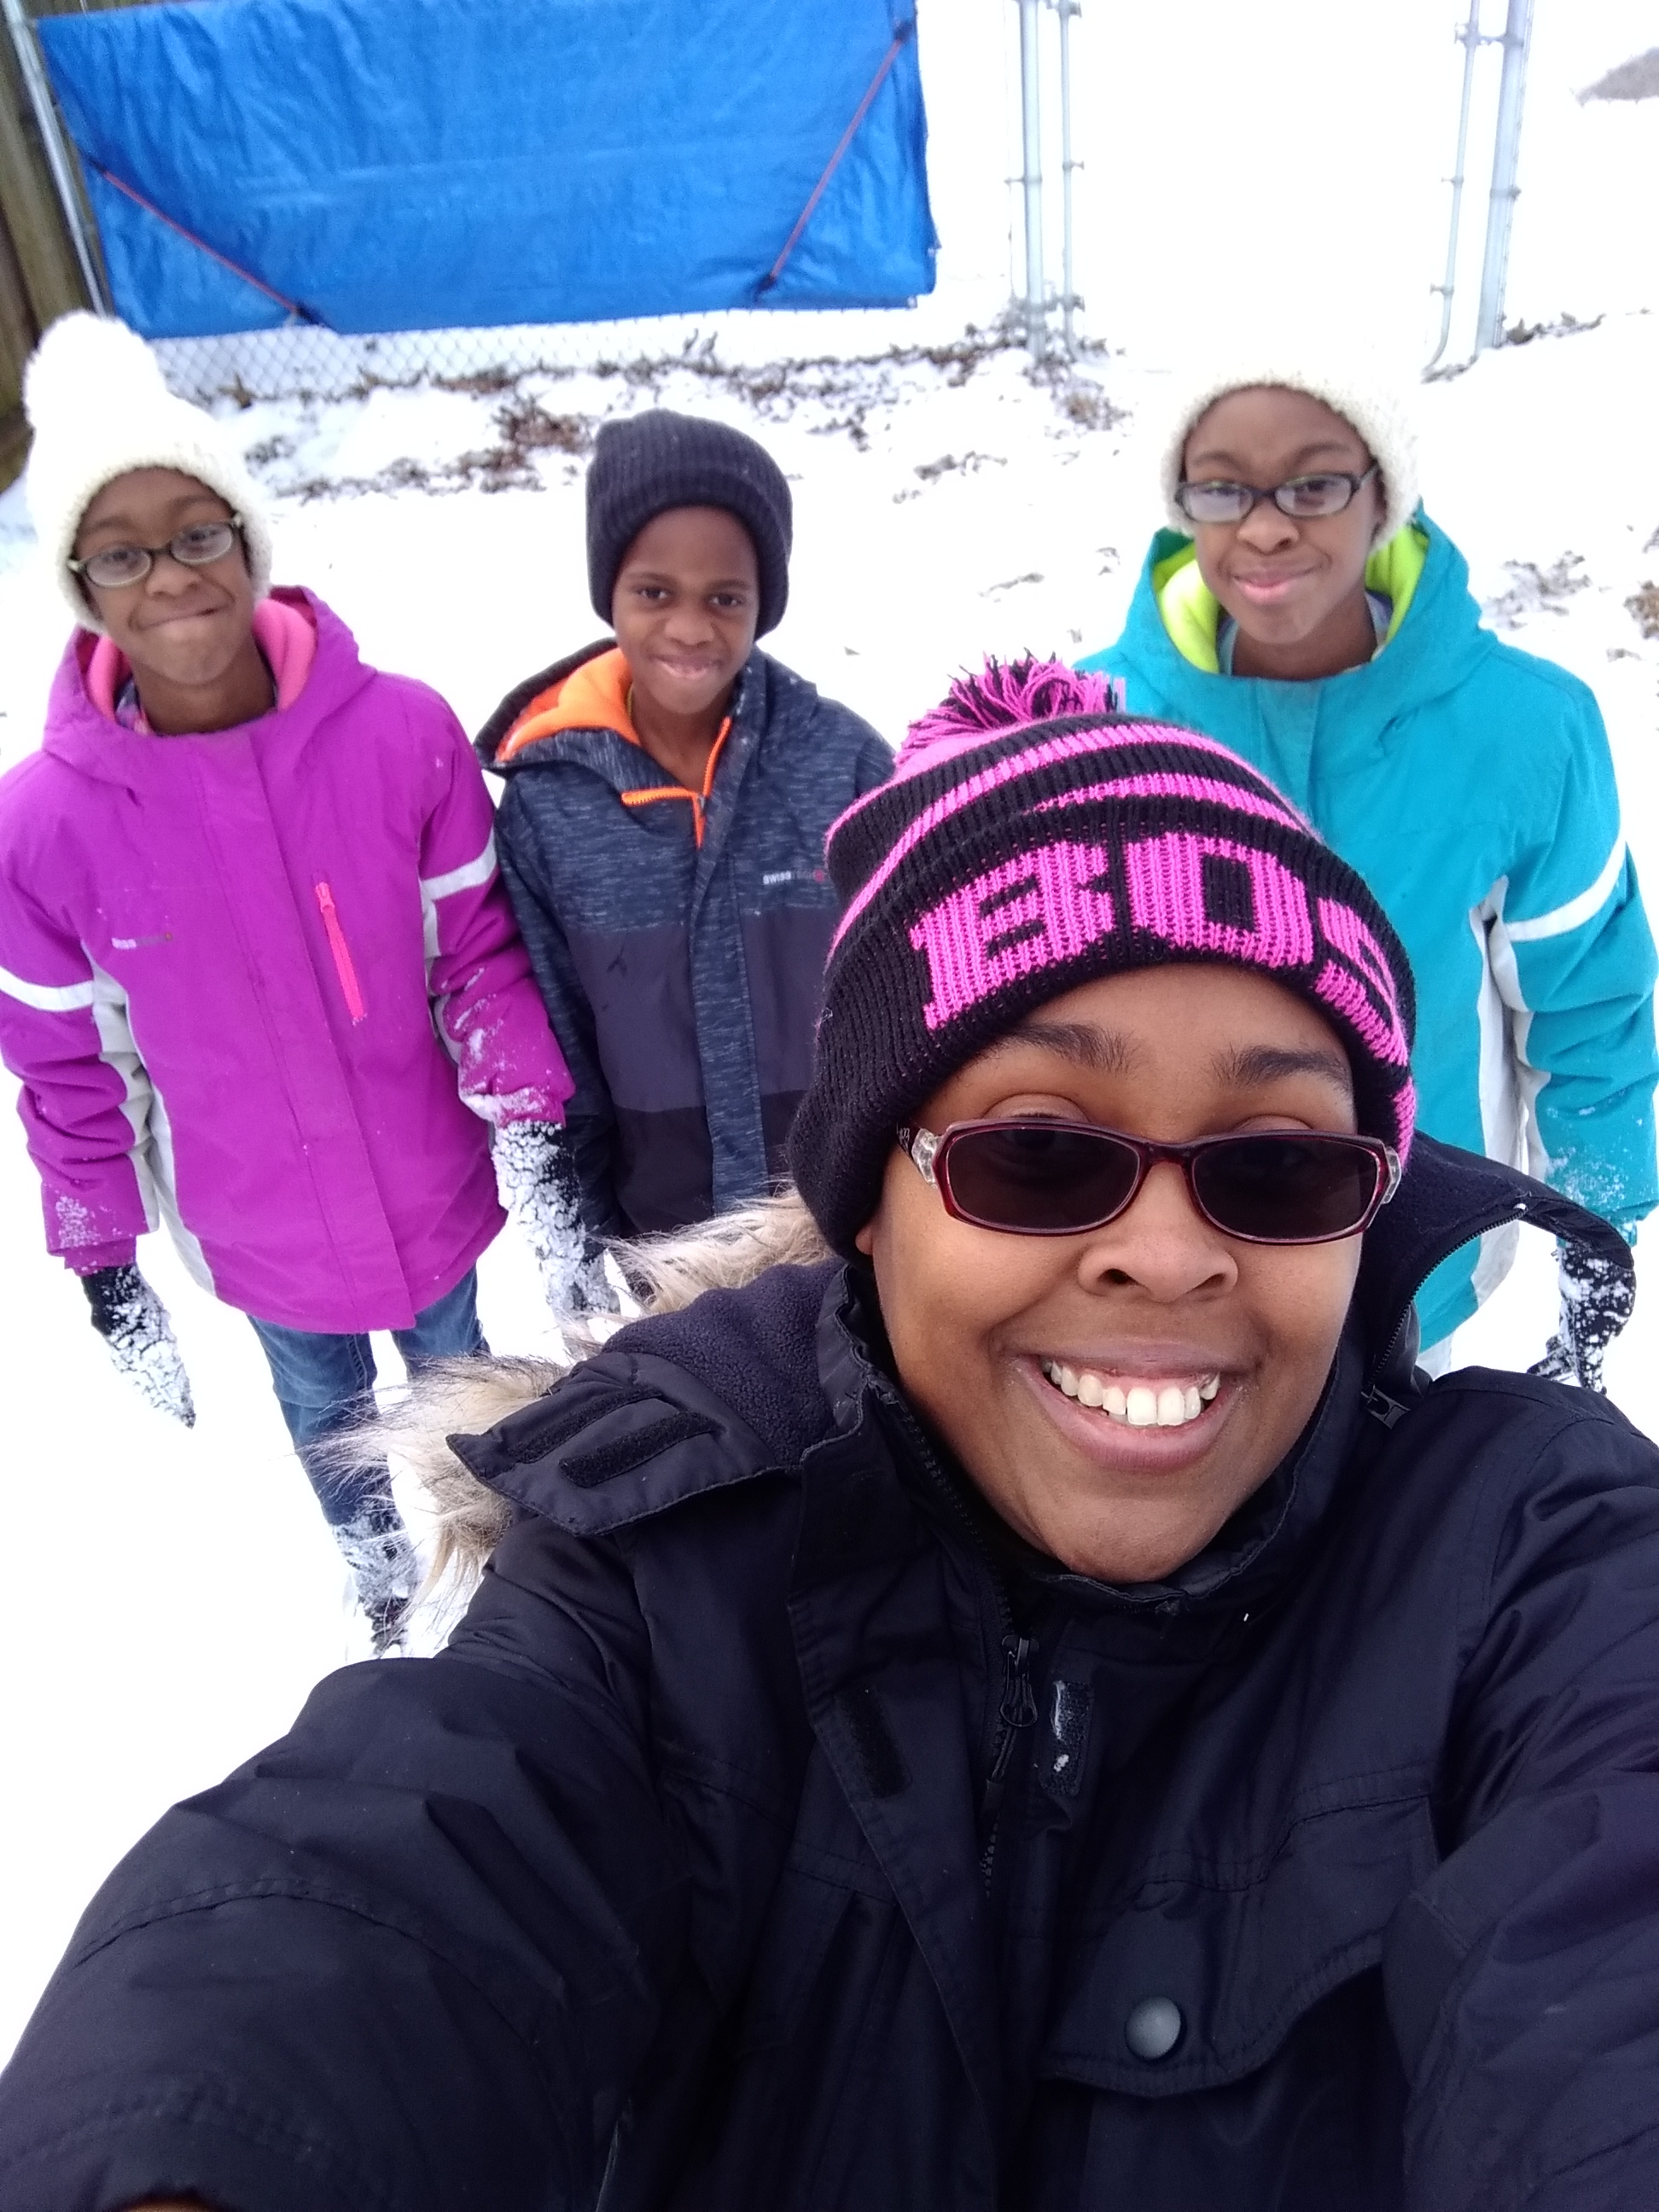 "<div class=""meta image-caption""><div class=""origin-logo origin-image none""><span>none</span></div><span class=""caption-text"">The Hood family from Roanoke Rapids! (Candice Hood - ABC11 Eyewitness)</span></div>"